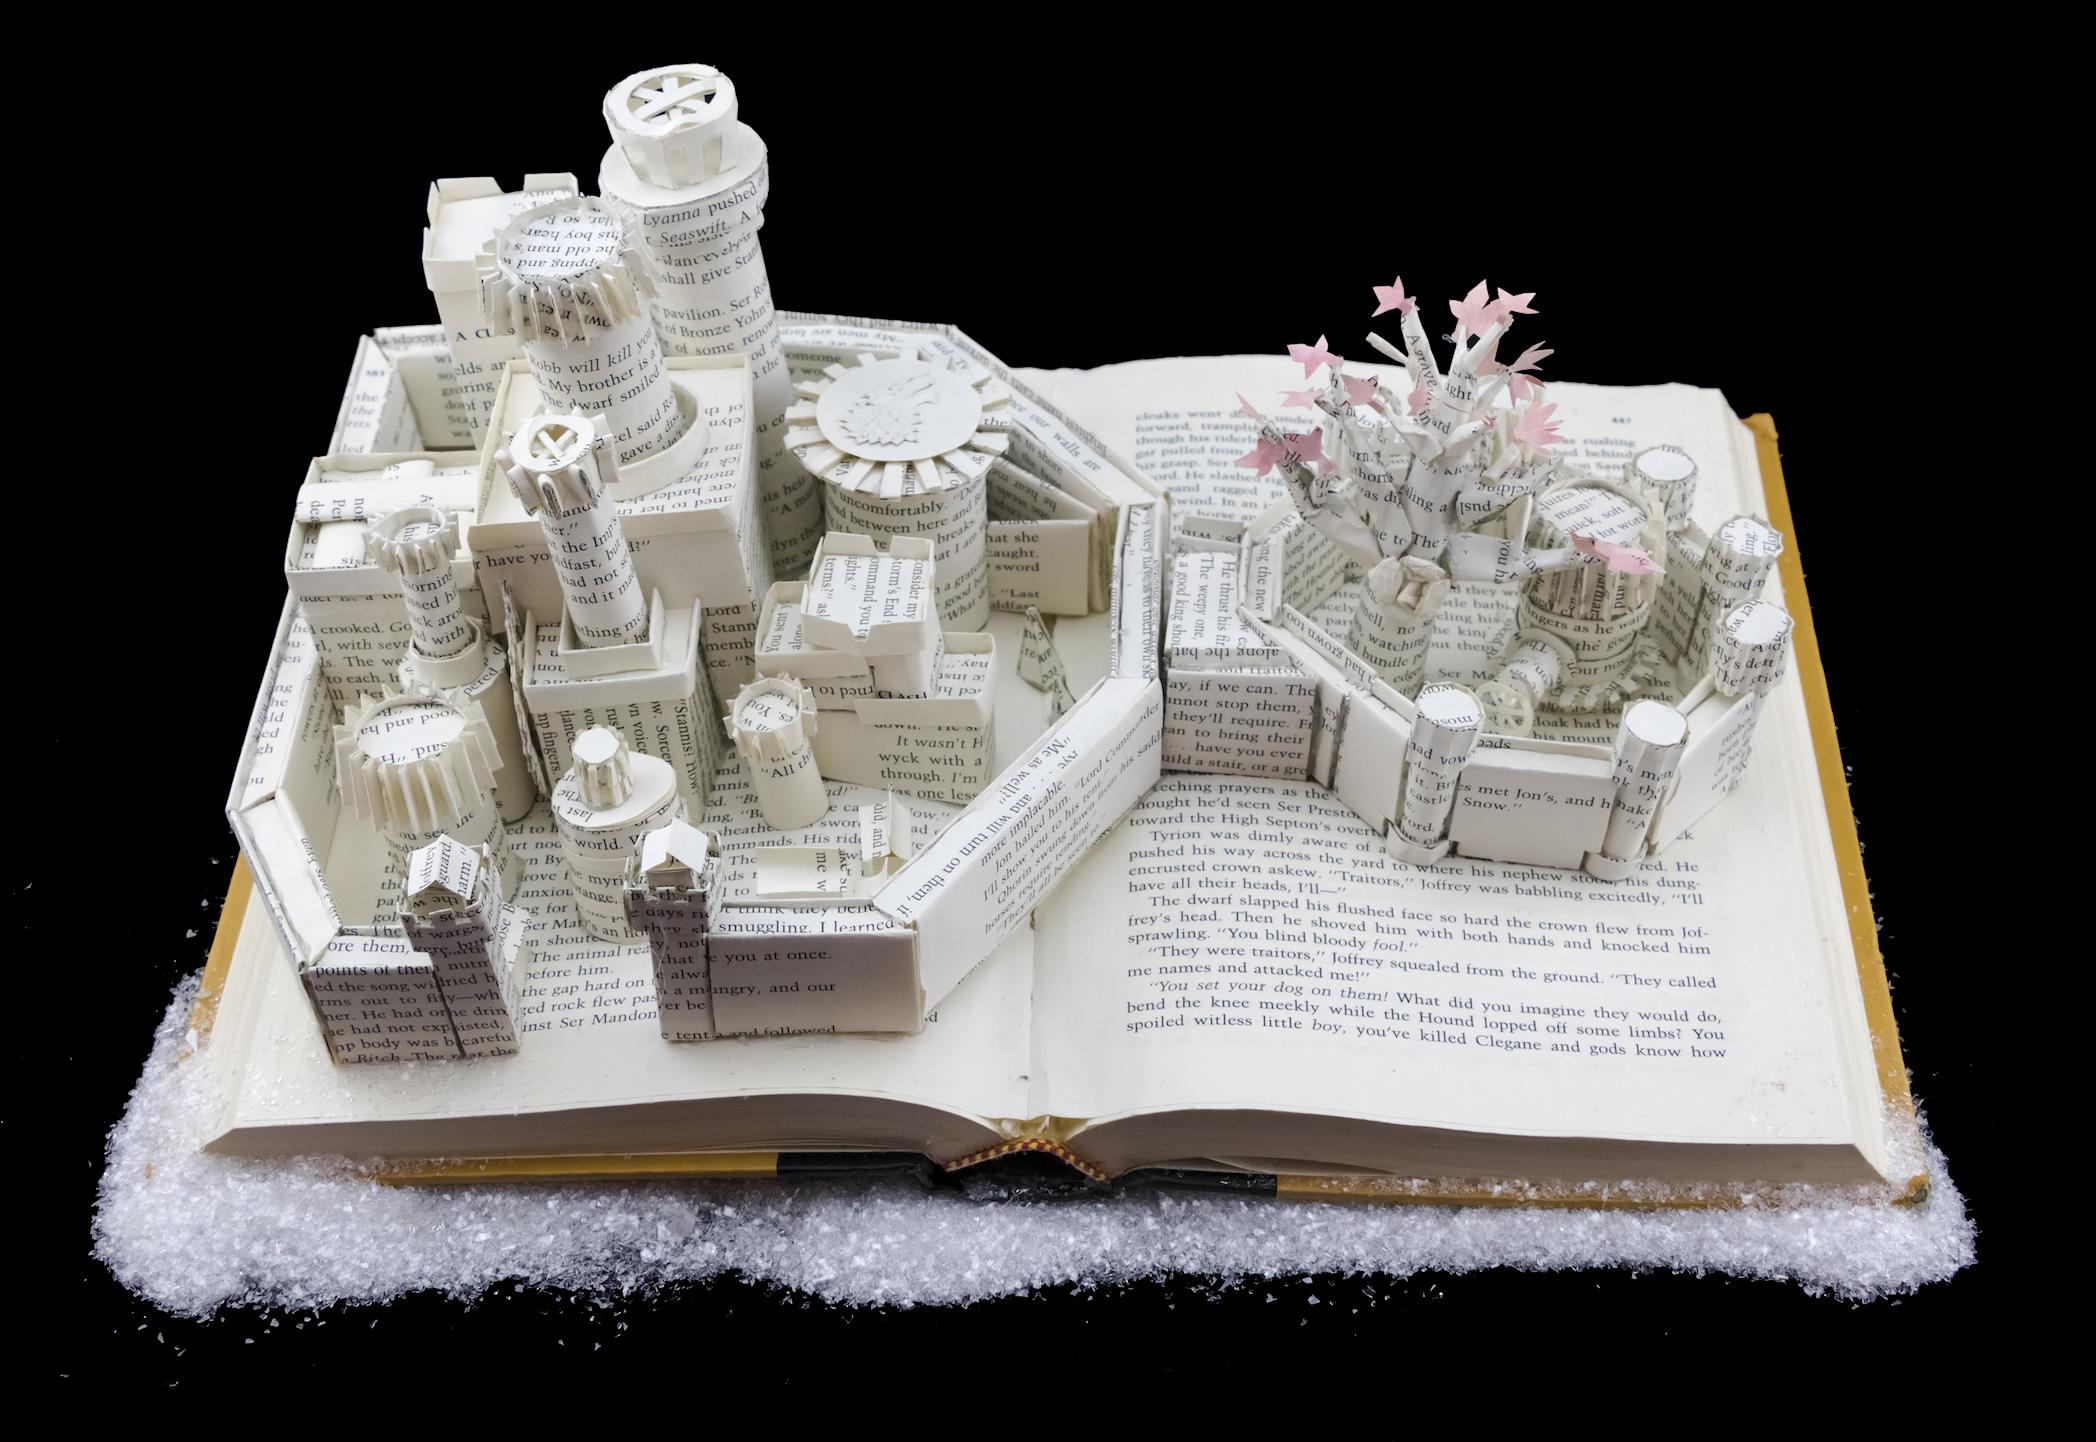 Harry Potter and the Prisoner of Azkaban Book Sculpture by Jamie B. Hannigan